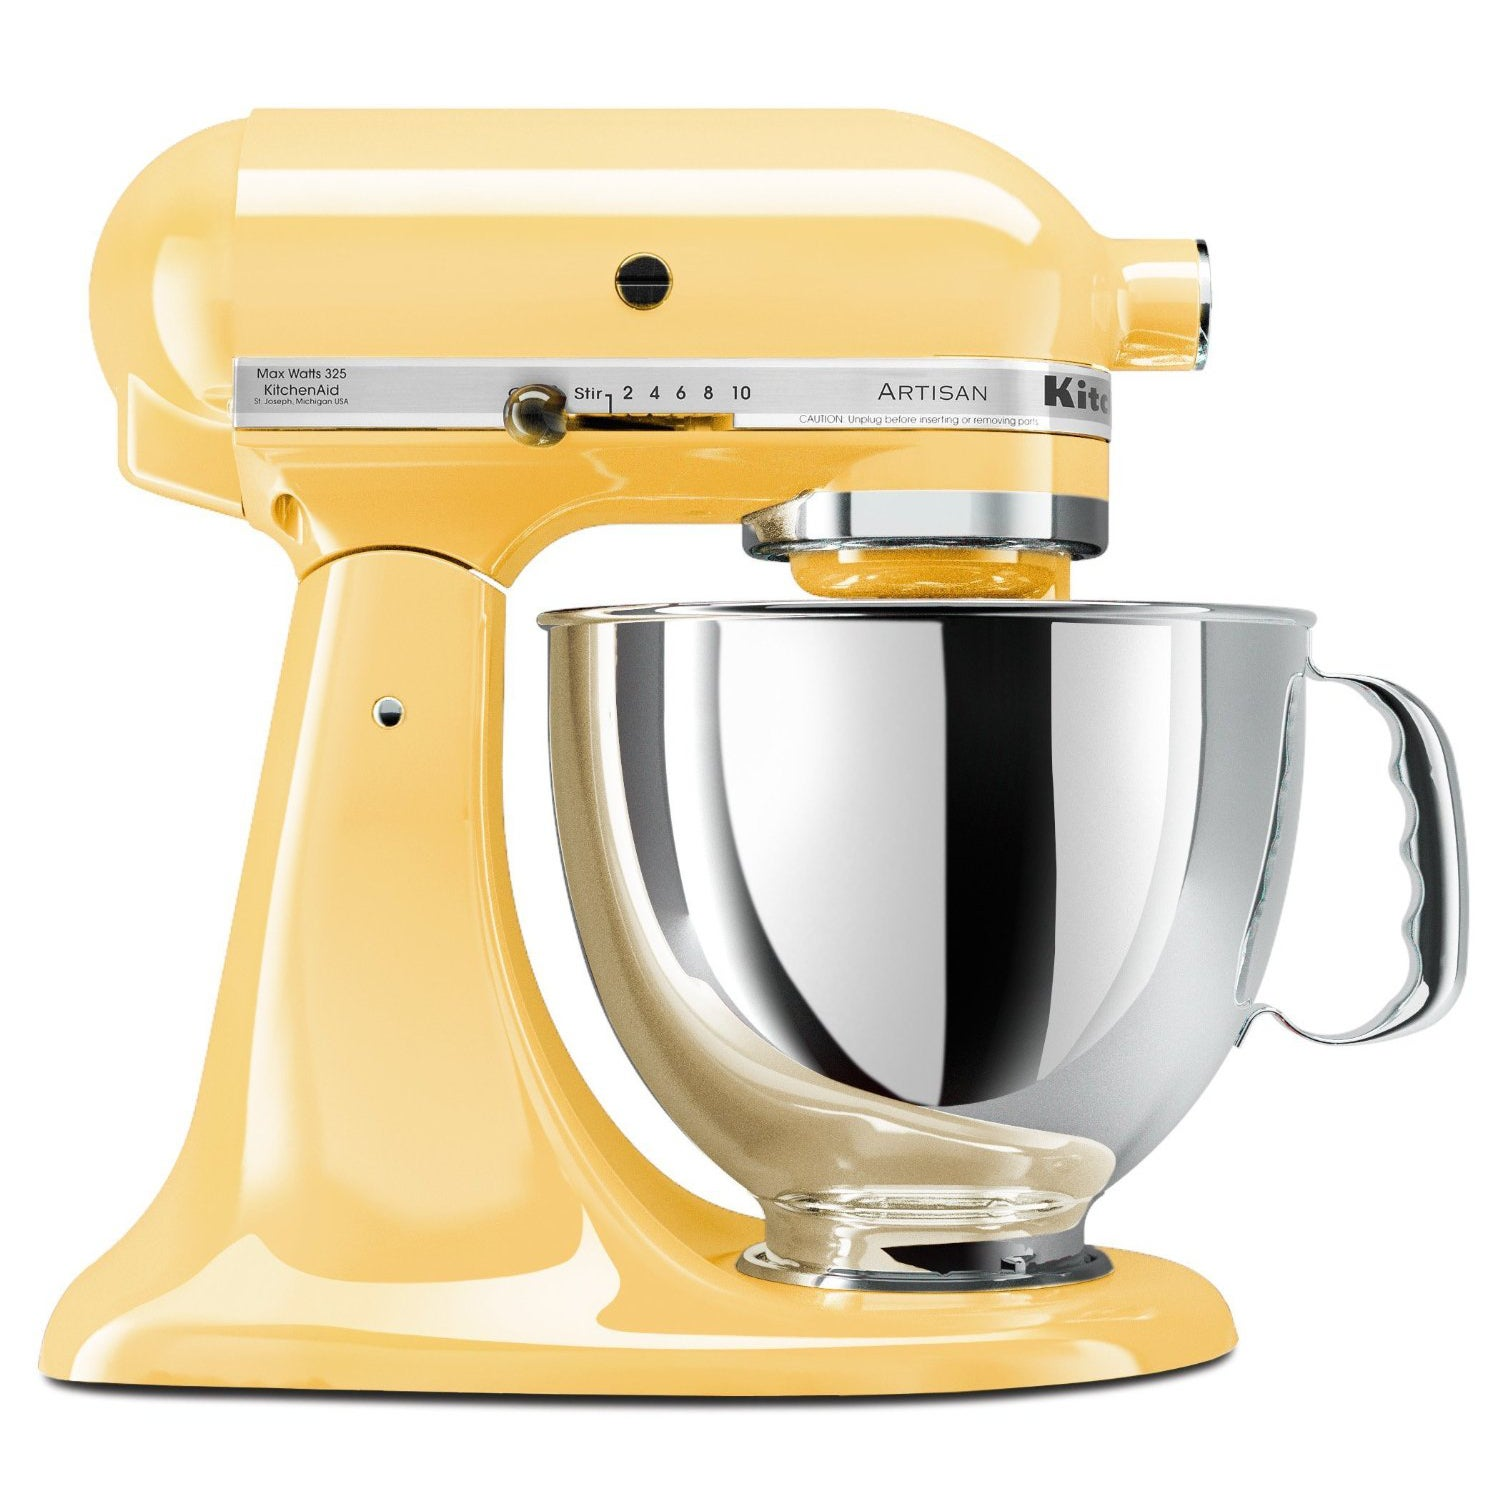 Captivating KitchenAid KSM150PSMY Majestic Yellow 5 Quart Artisan Tilt Head Stand Mixer    Free Shipping Today   Overstock.com   12254875